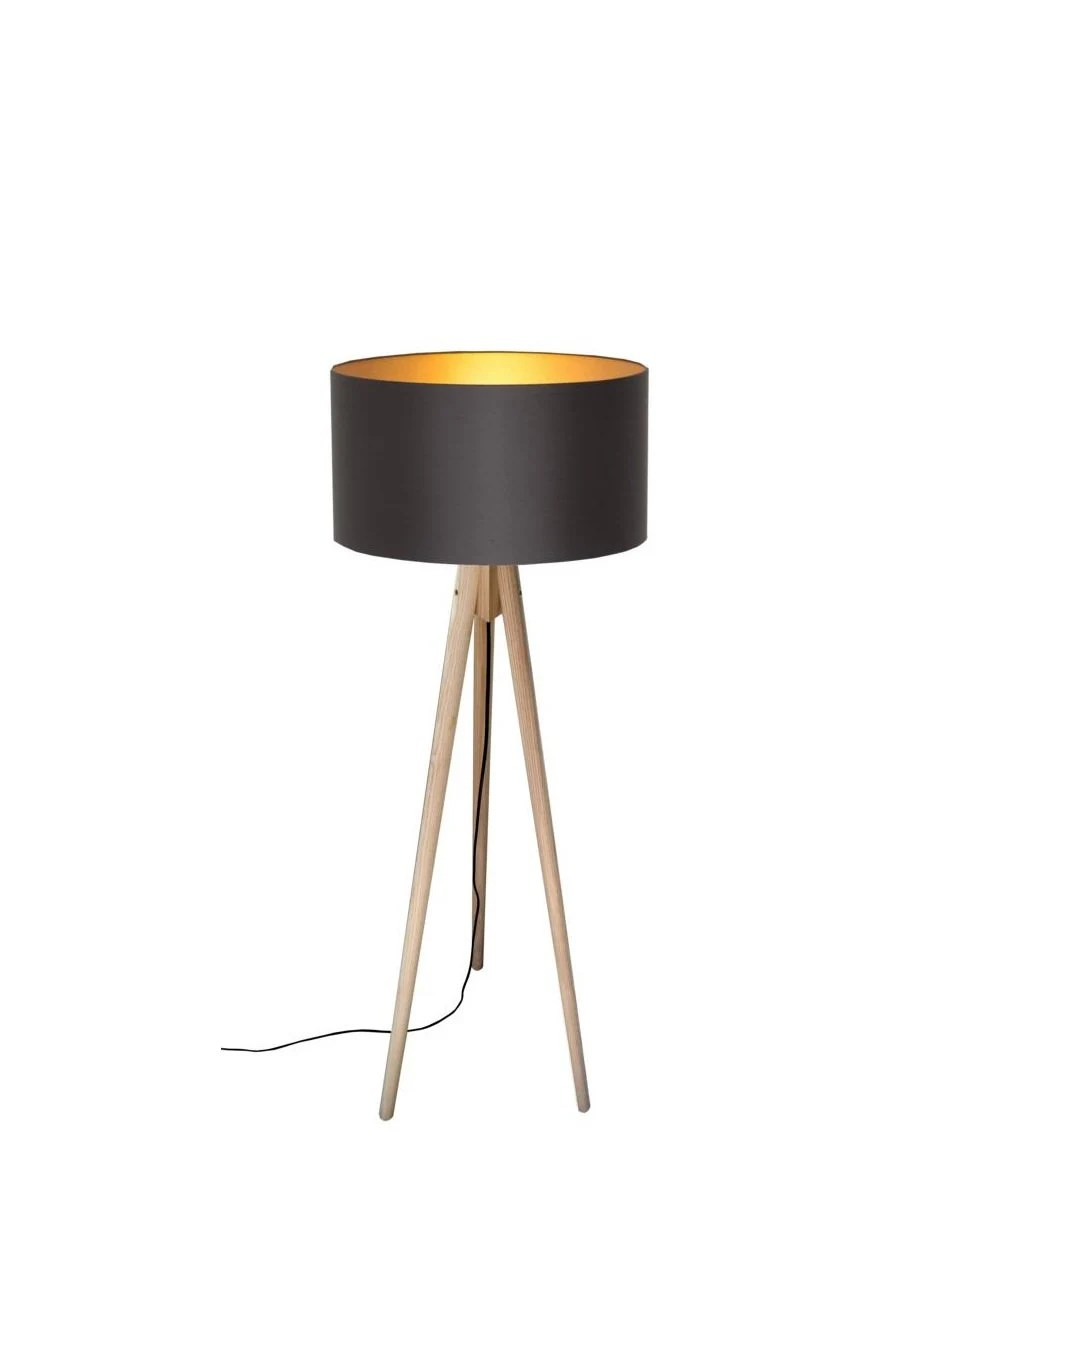 Lichthaus Worpswede Tripod Floor Lamp Black Meets Gold